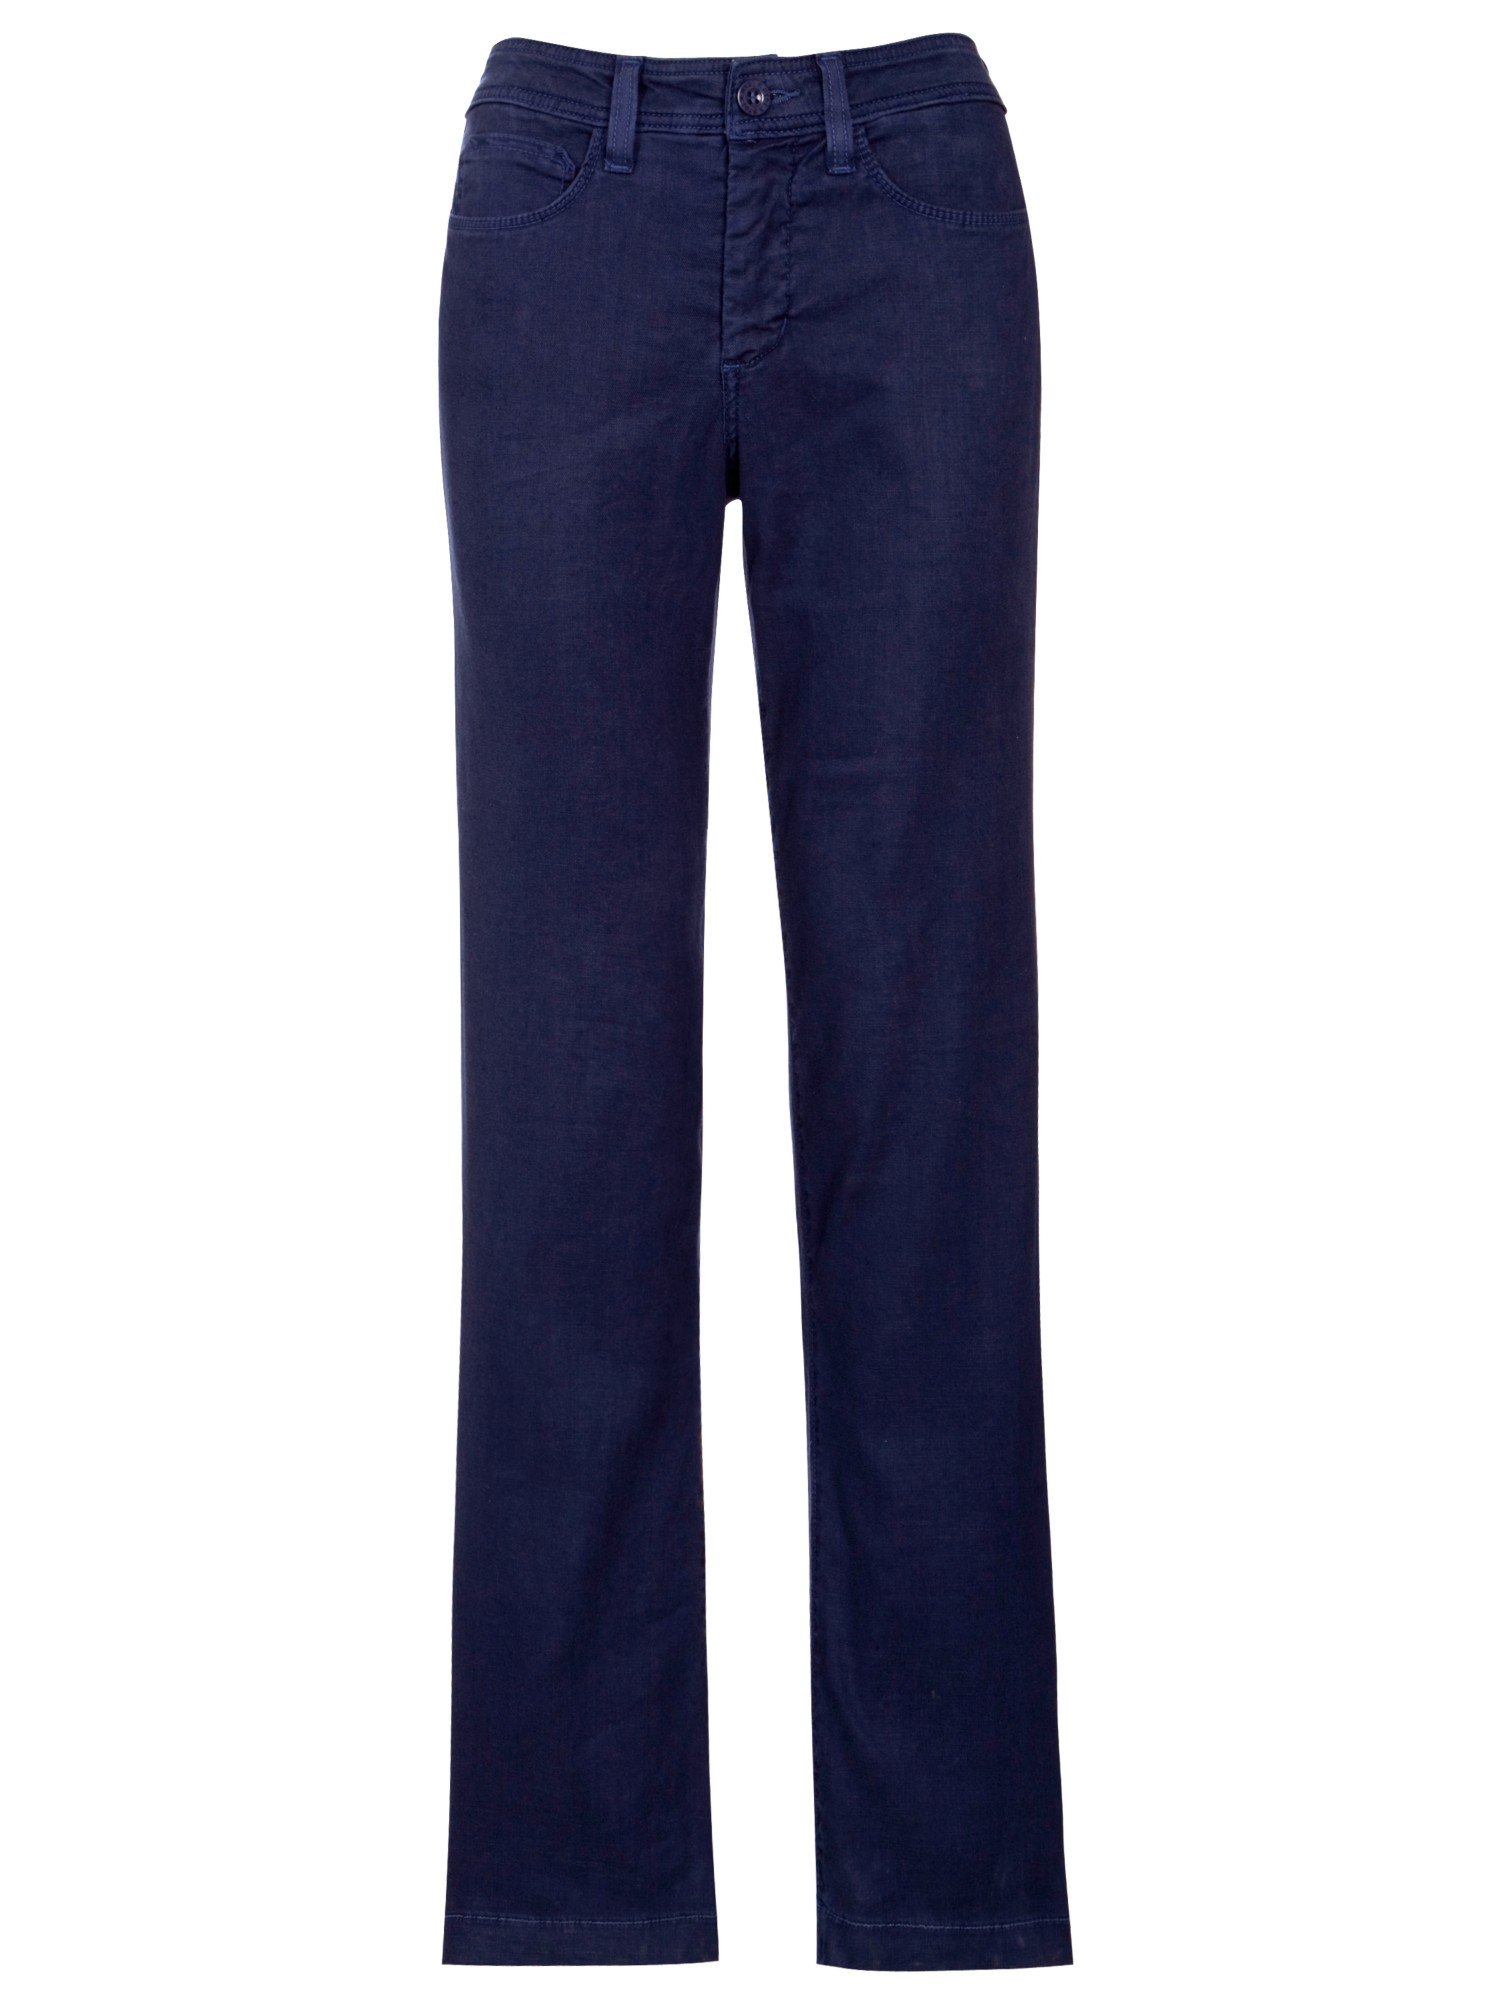 Not Your Daughter's Jeans Linenblend Wide Leg Trousers in Blue